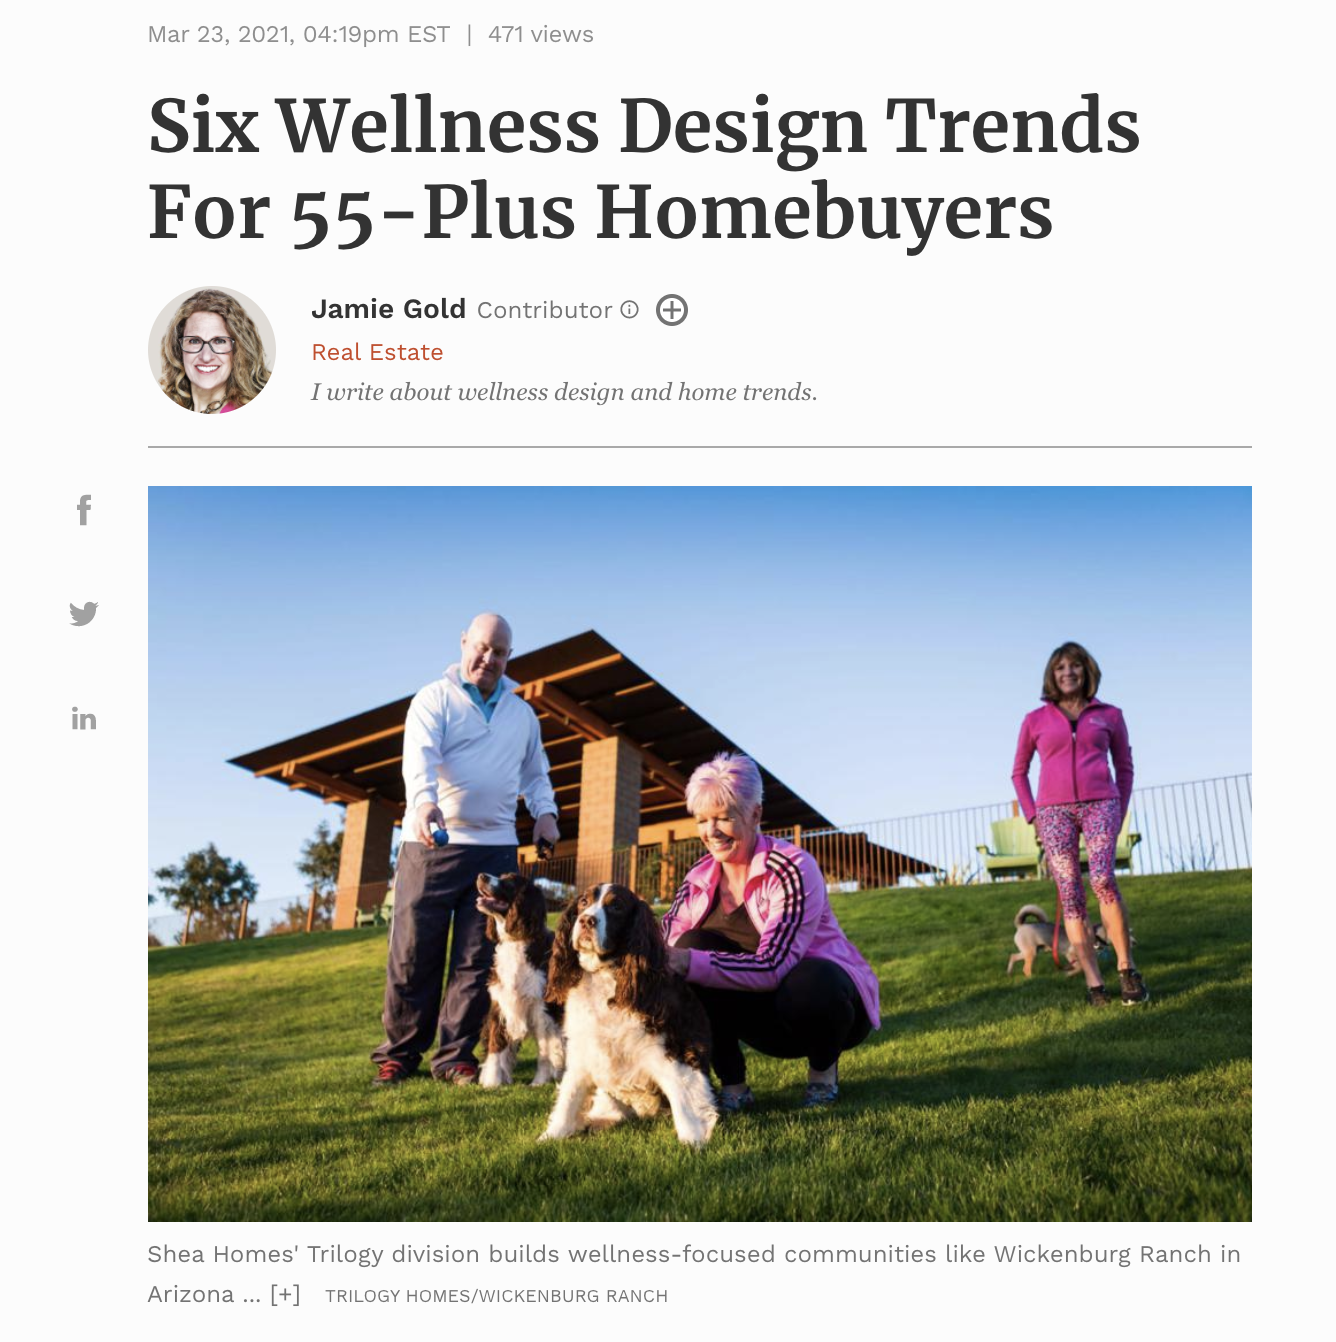 Six Wellness Design Trends For 55-Plus Homebuyers